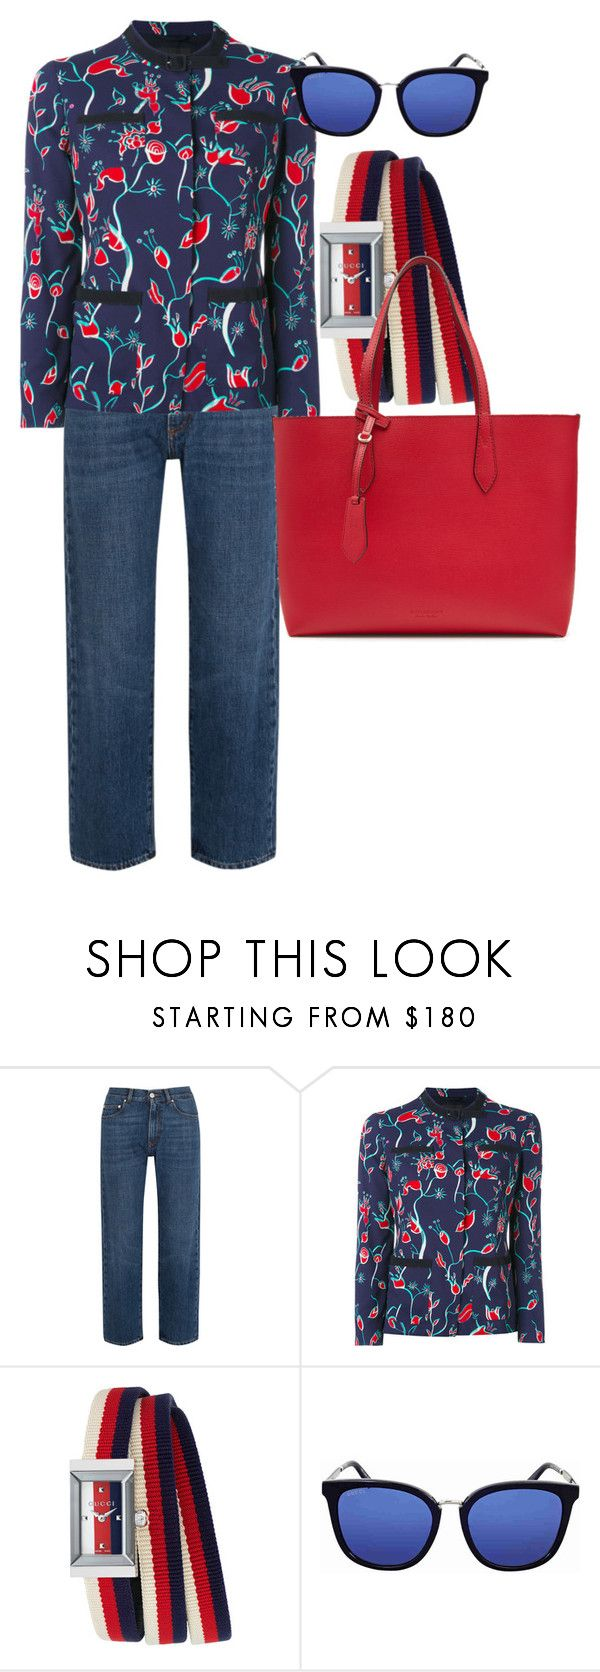 """Без названия #4"" by markova-elena on Polyvore featuring мода, AlexaChung, Emporio Armani, Gucci и Burberry"